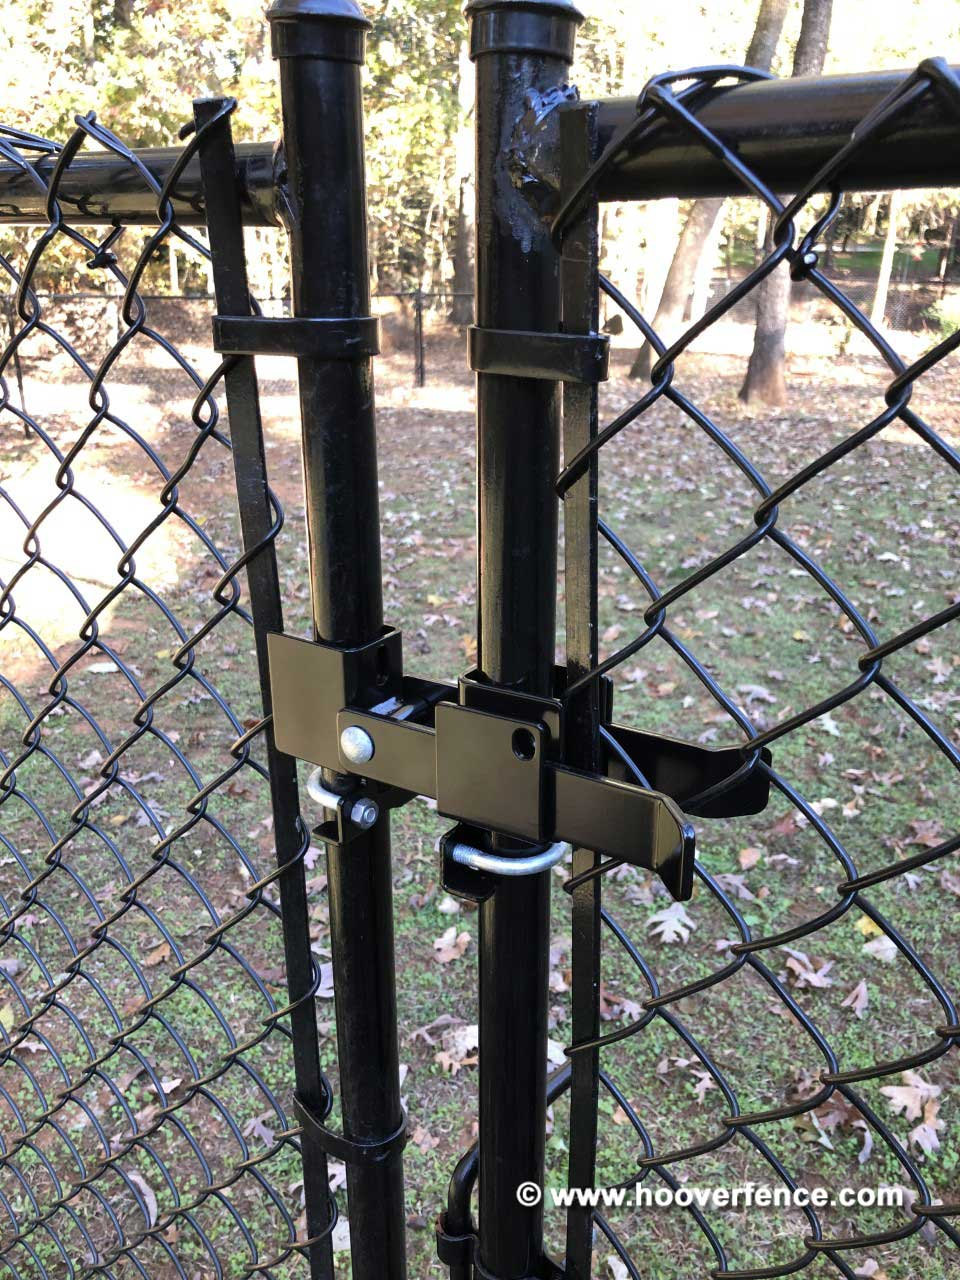 Customer Install - DAC-4138-B Installed on Black Chain Link Fence Double Swing Gate